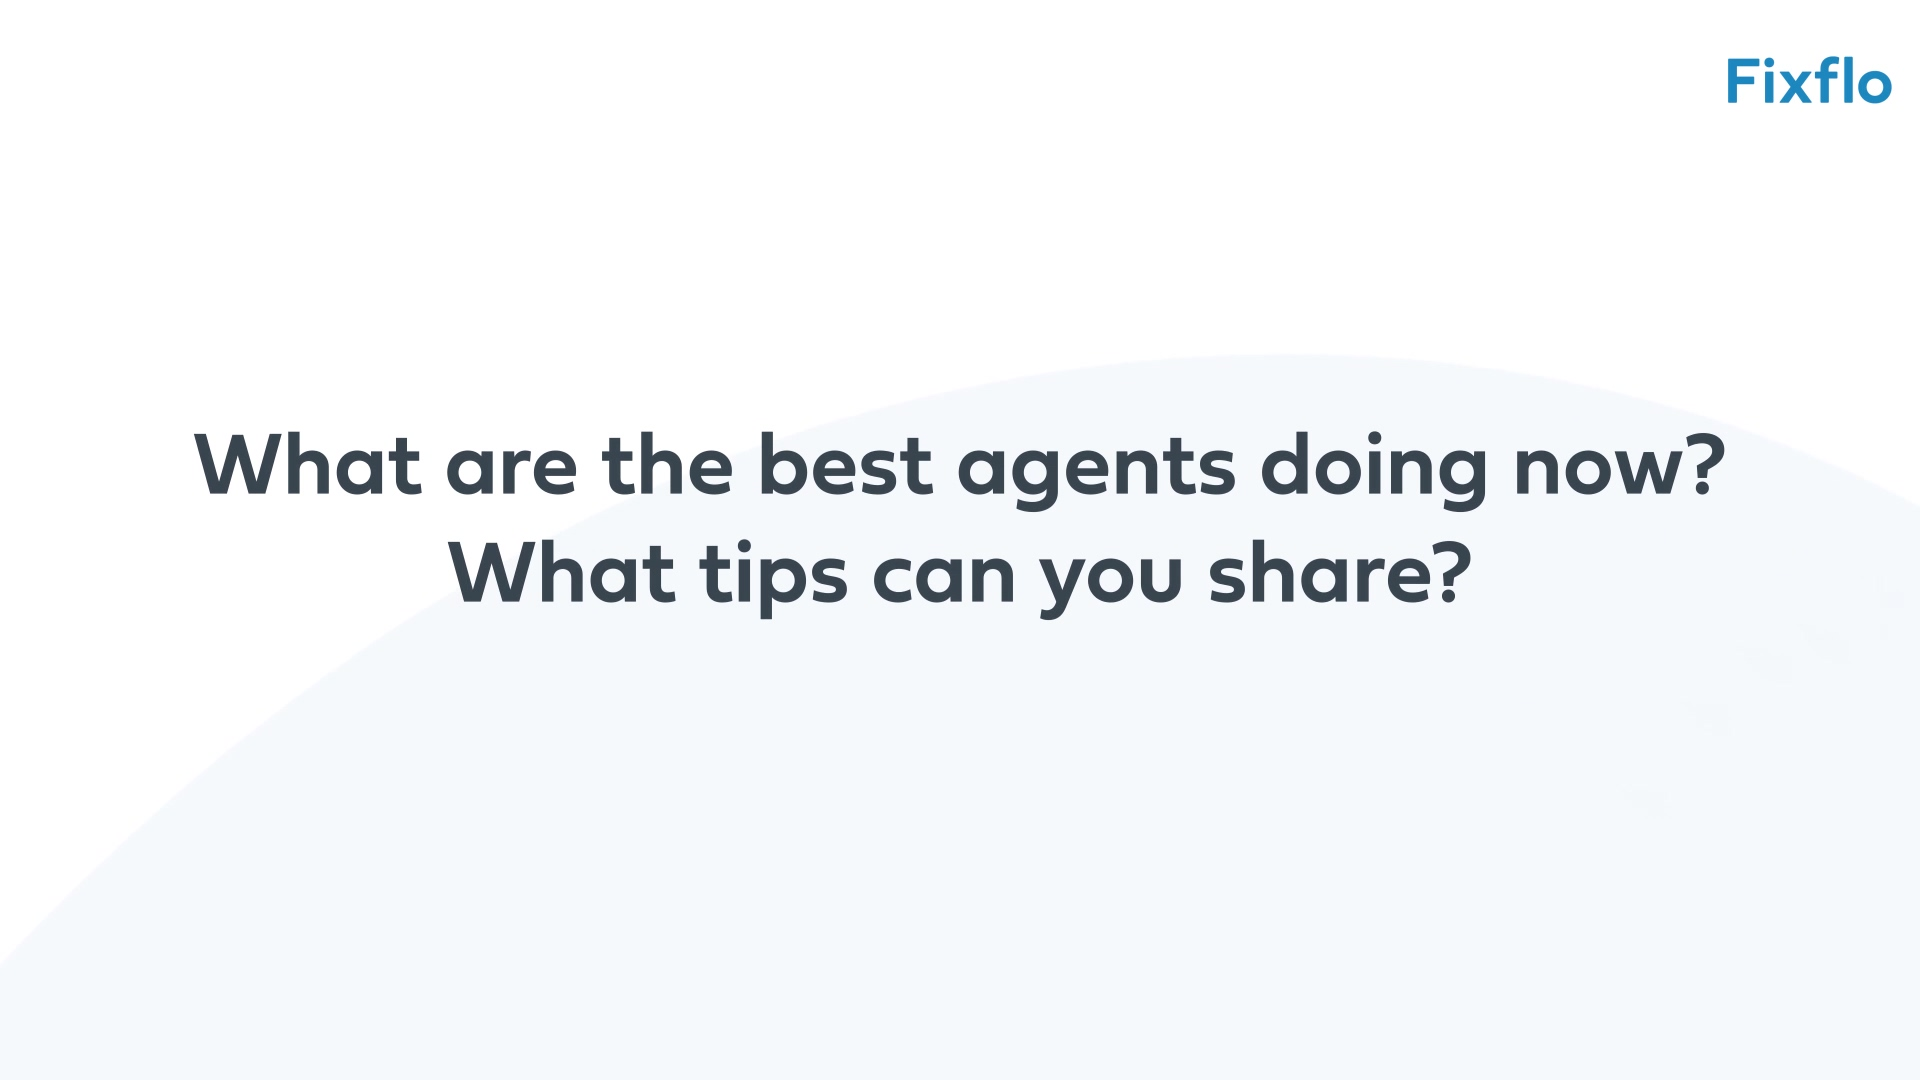 Chris Watkin - 5 - What are the best agents doing